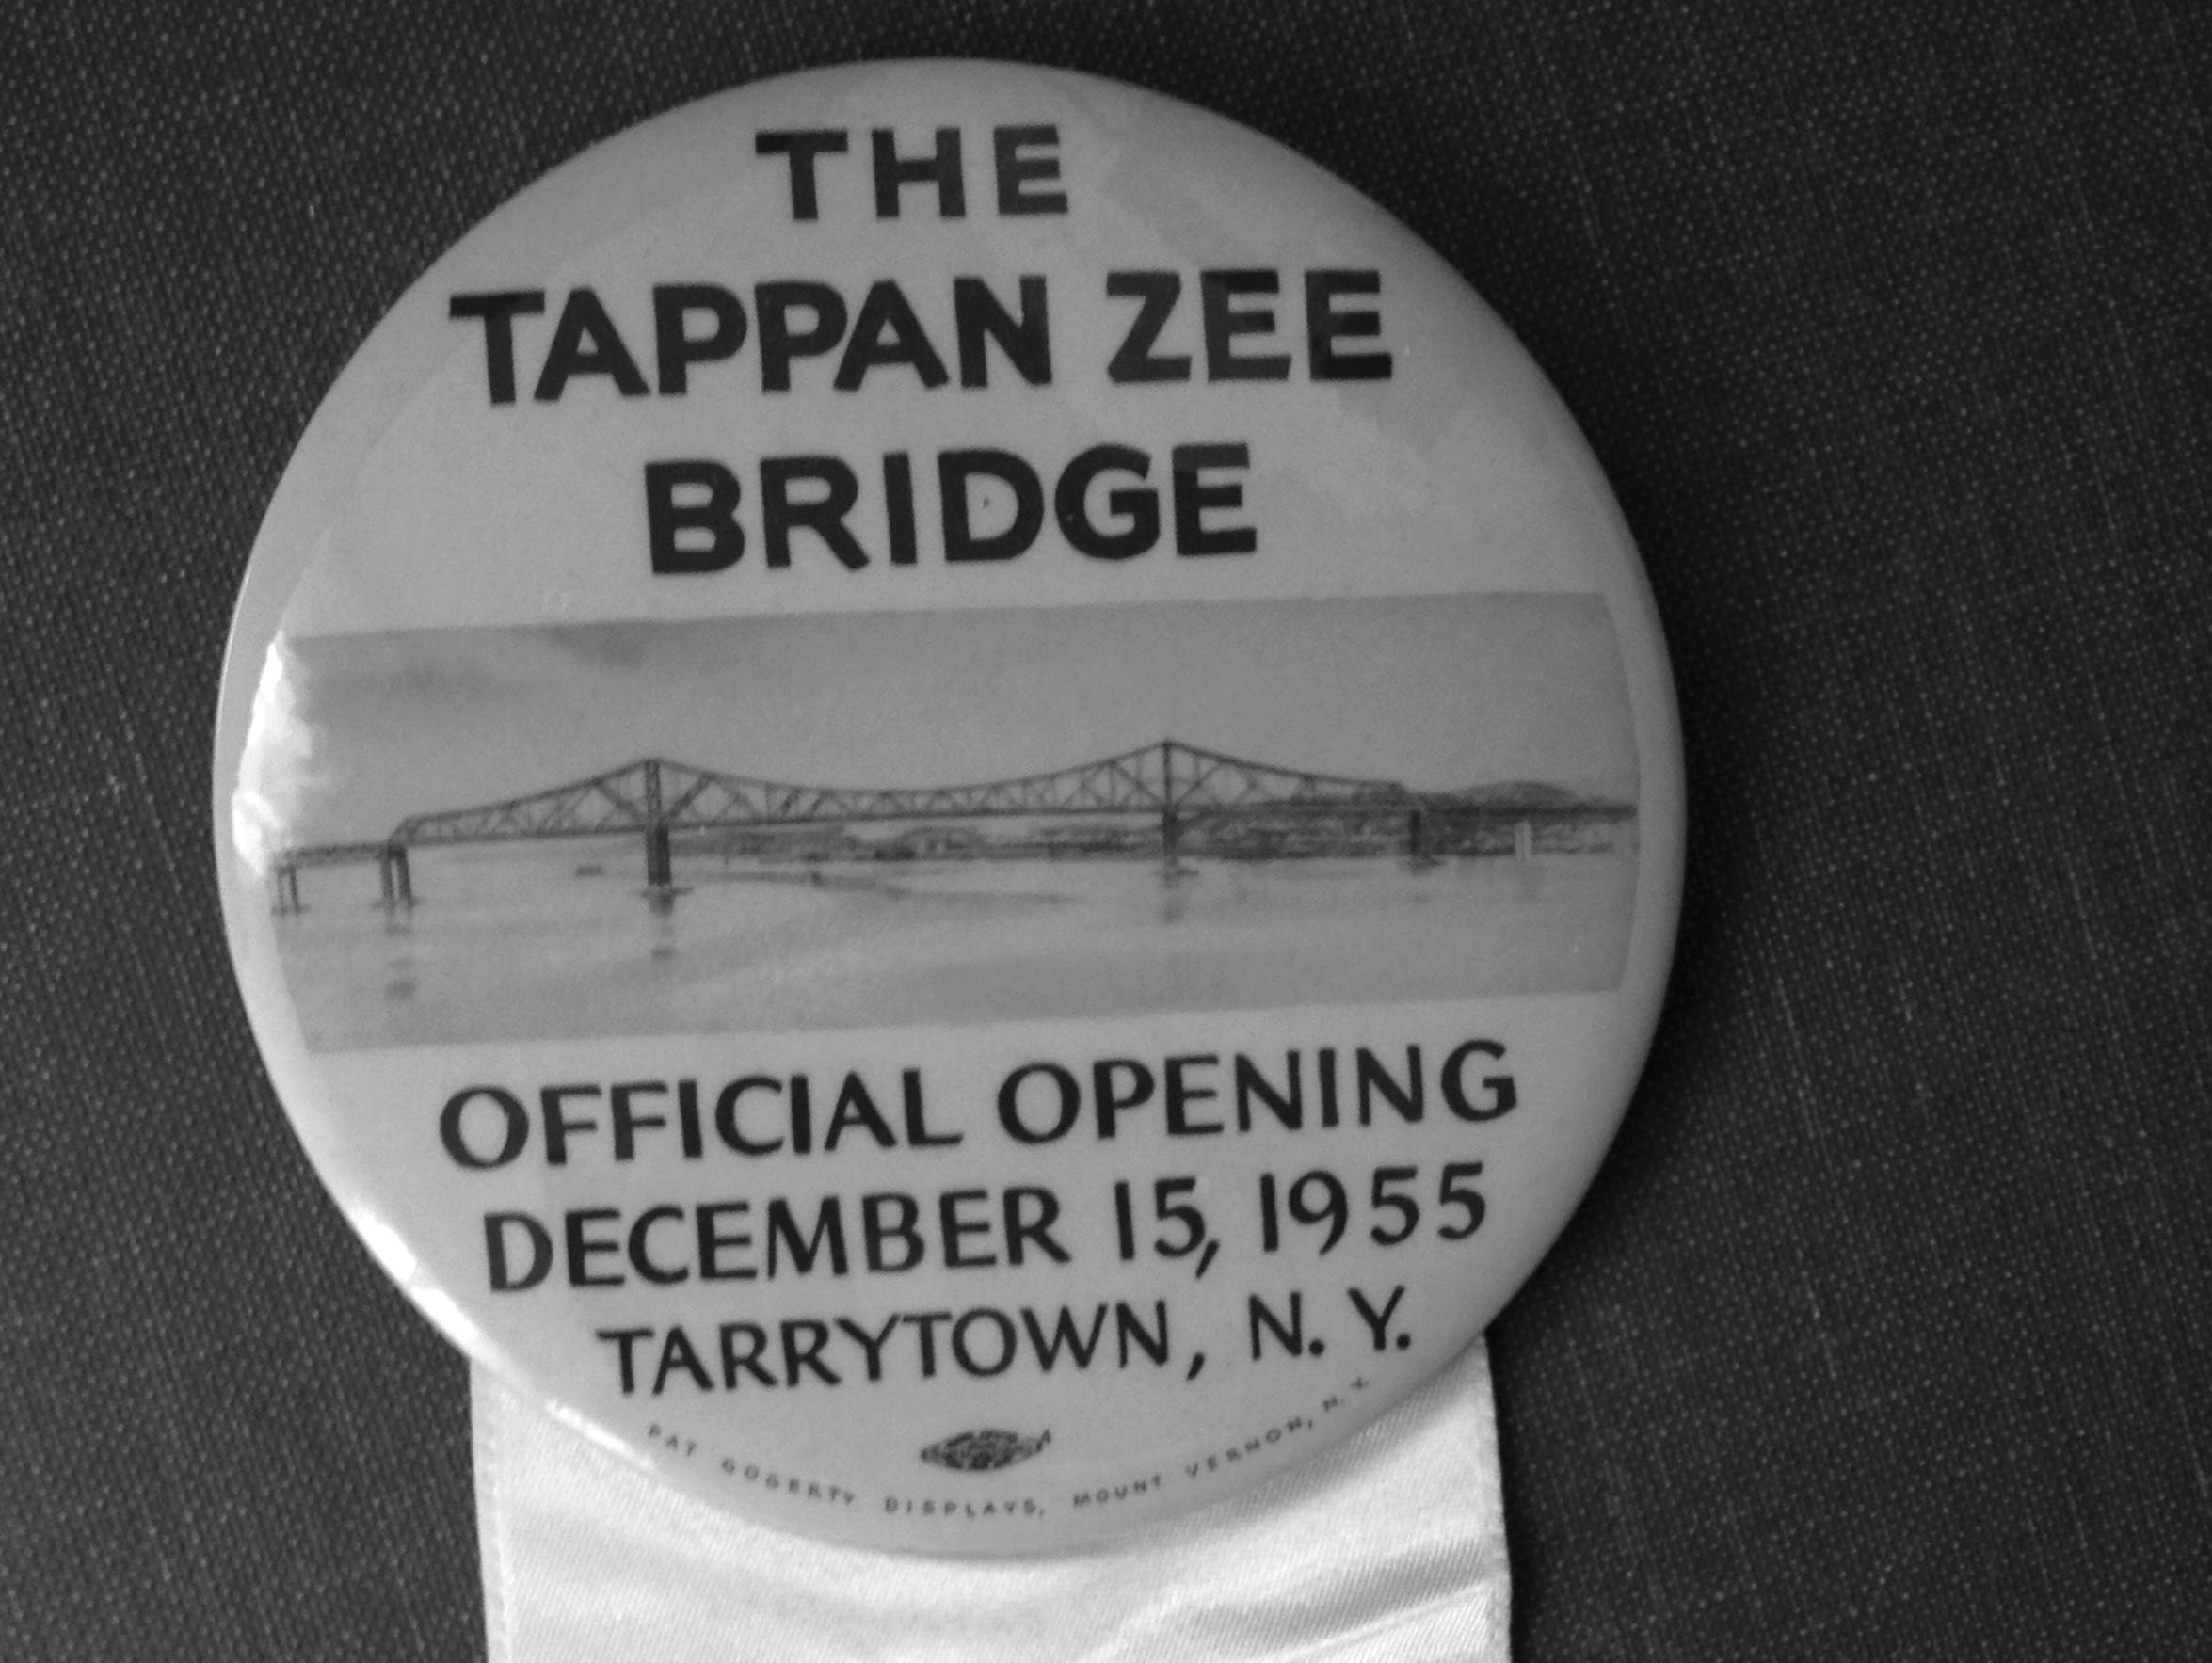 A button and ribbon commemorating the opening of the